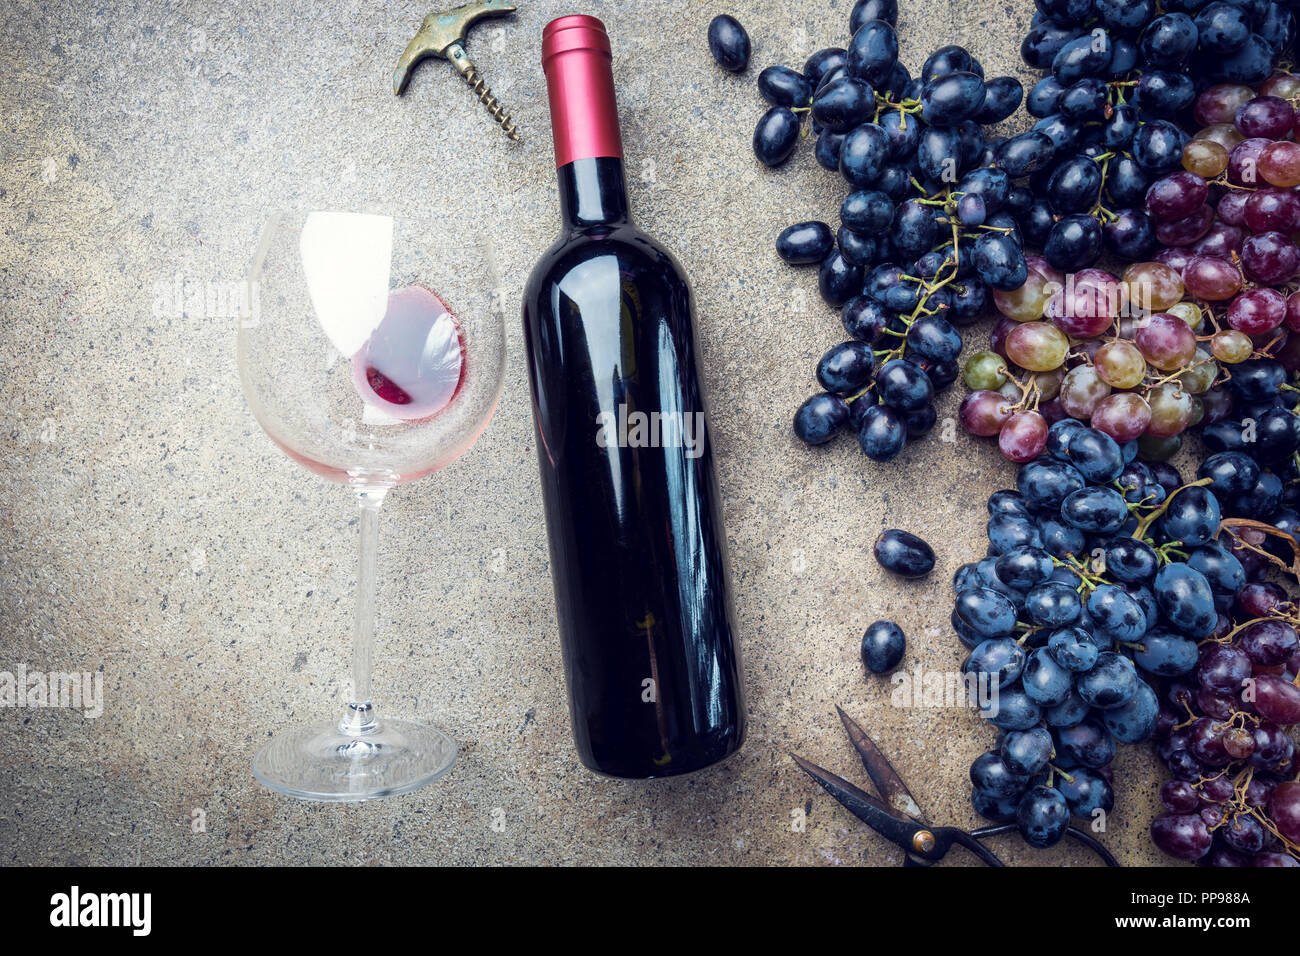 A bottle of red wine with glass and grapes on a gray stone background, copy space , top view. Stock Photo